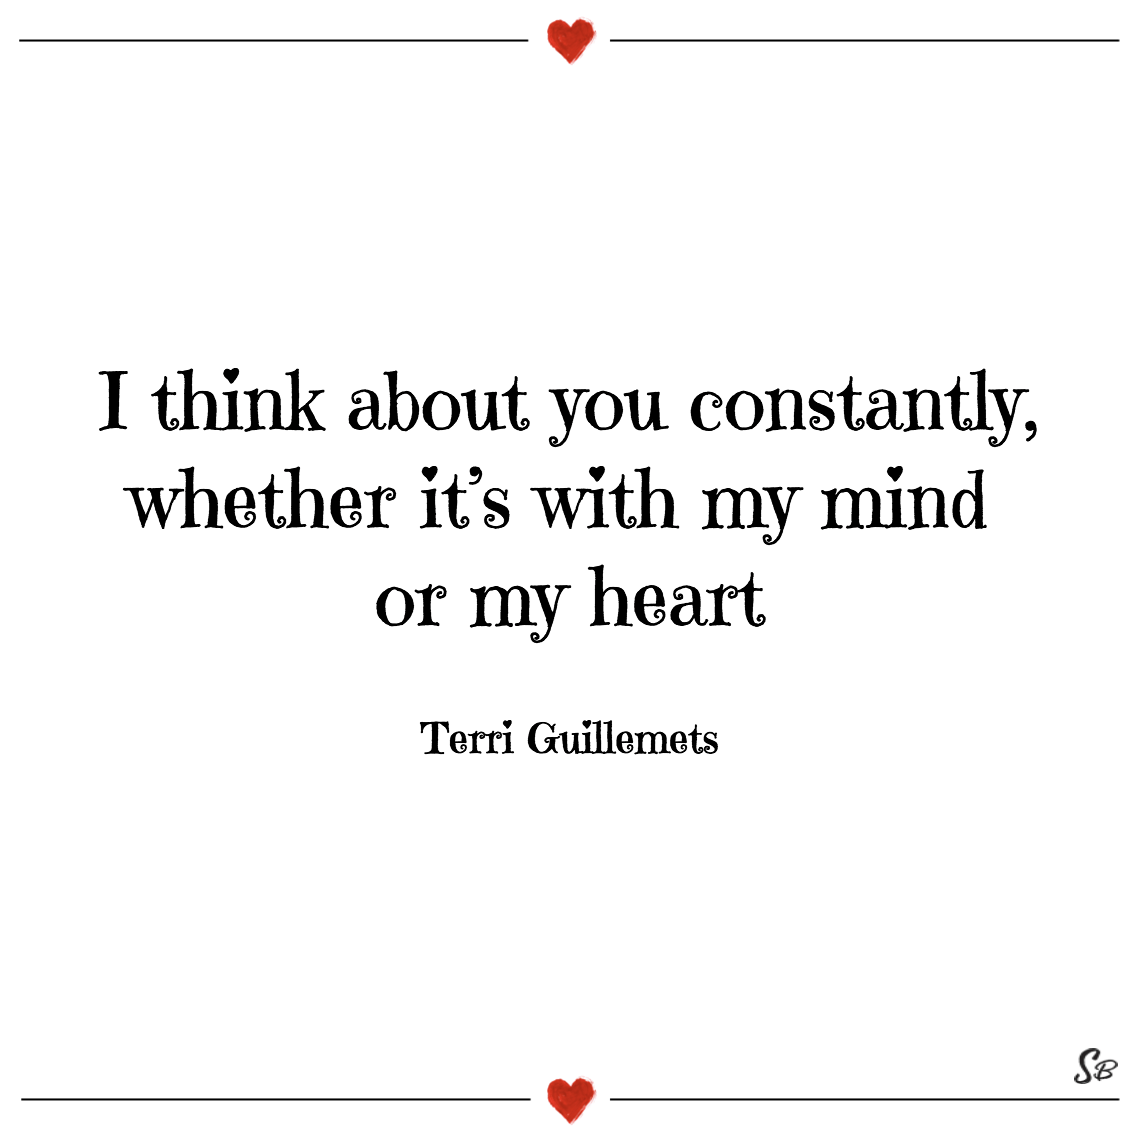 I think about you constantly, whether it's with my mind or my heart terri guillemets